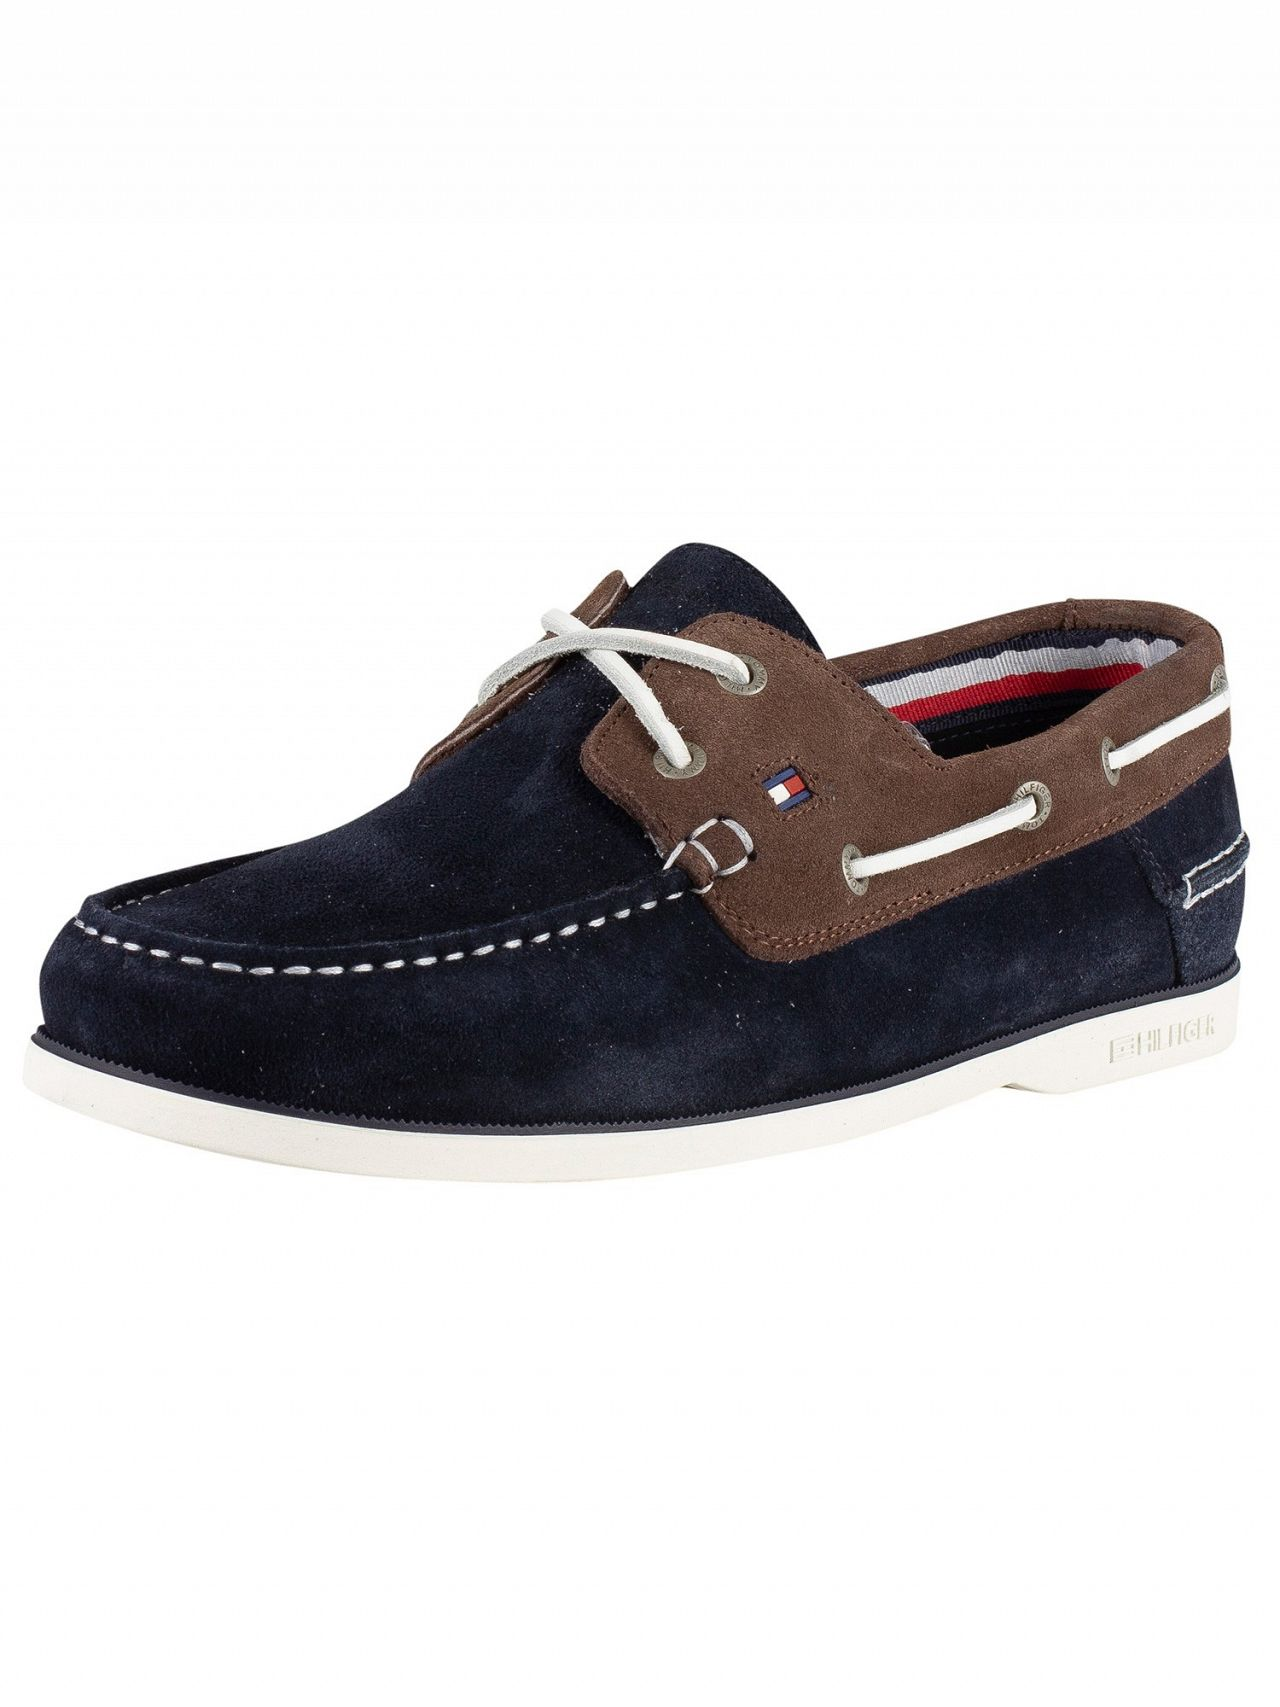 960740807 Tommy Hilfiger Midnight Coffee Bean Classic Suede Boat Shoes